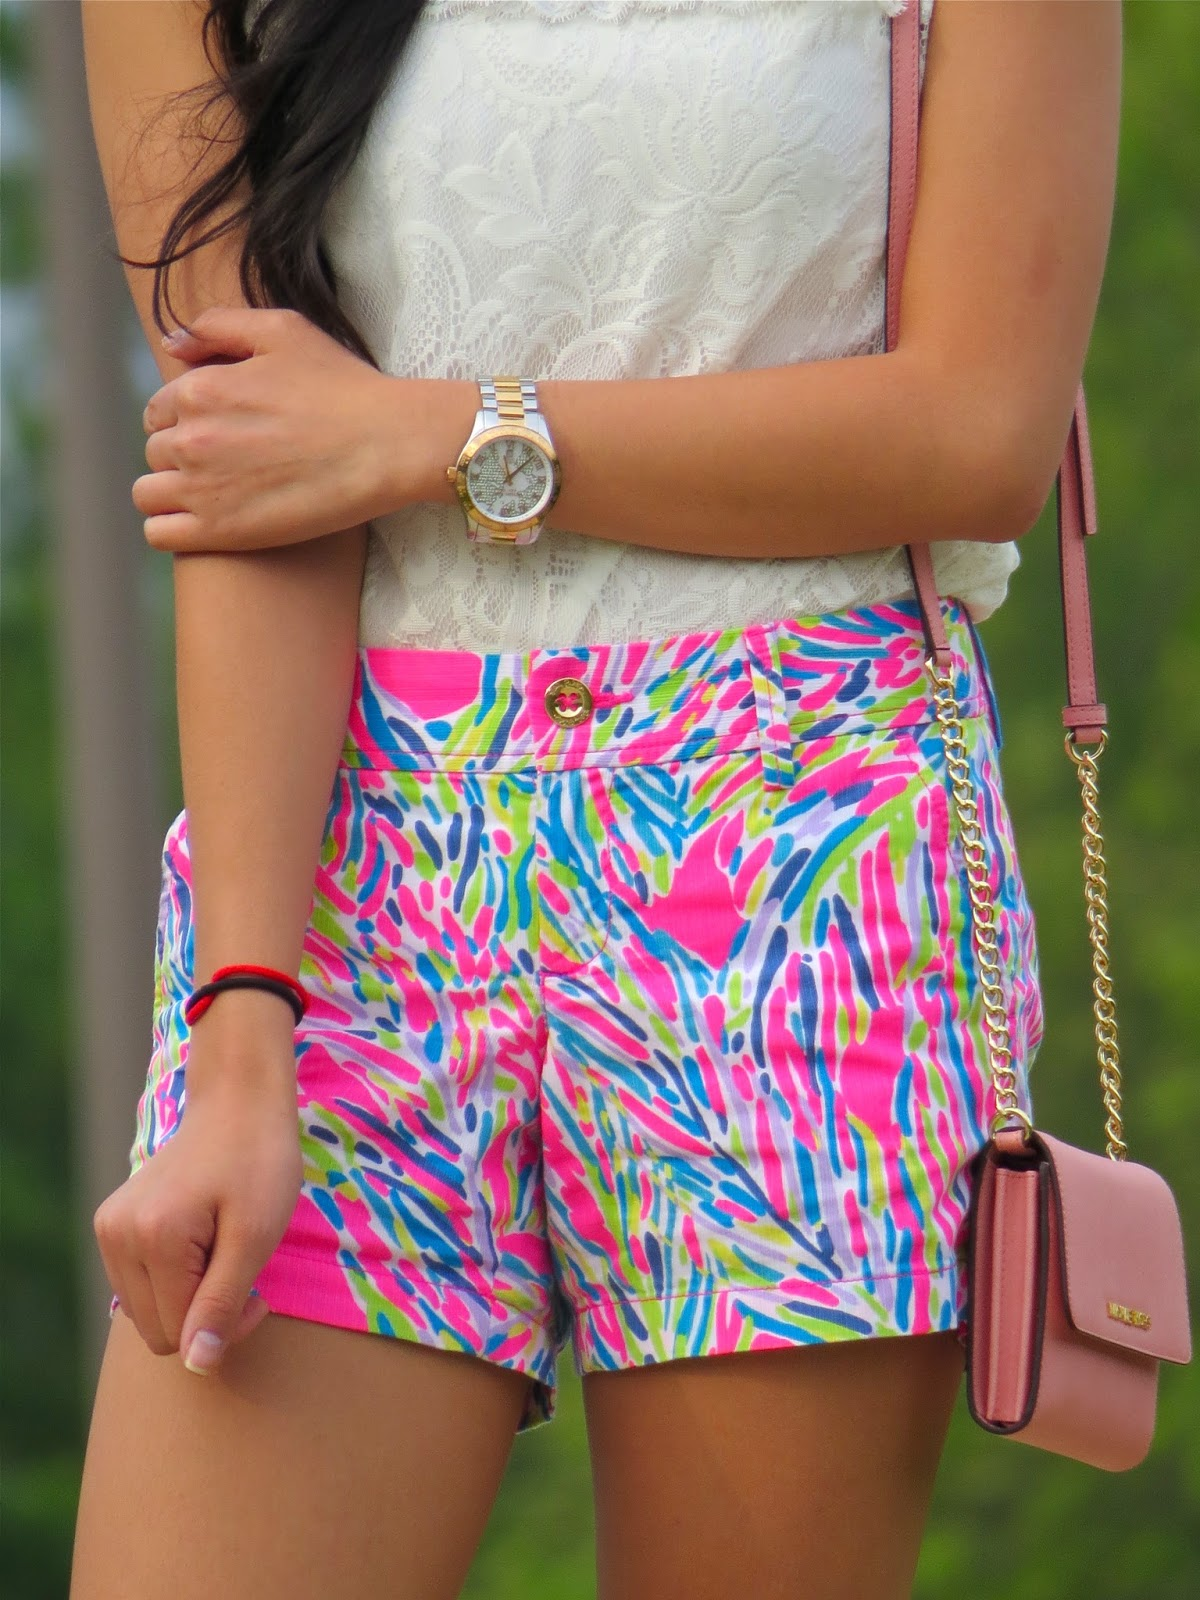 Lace Top: Forever 21 (similar)  Shorts: Lilly Pulitzer (same Shorts,  Different Print)  Flats: Target  Purse: Michael Kors  Watch: Michael  Kors